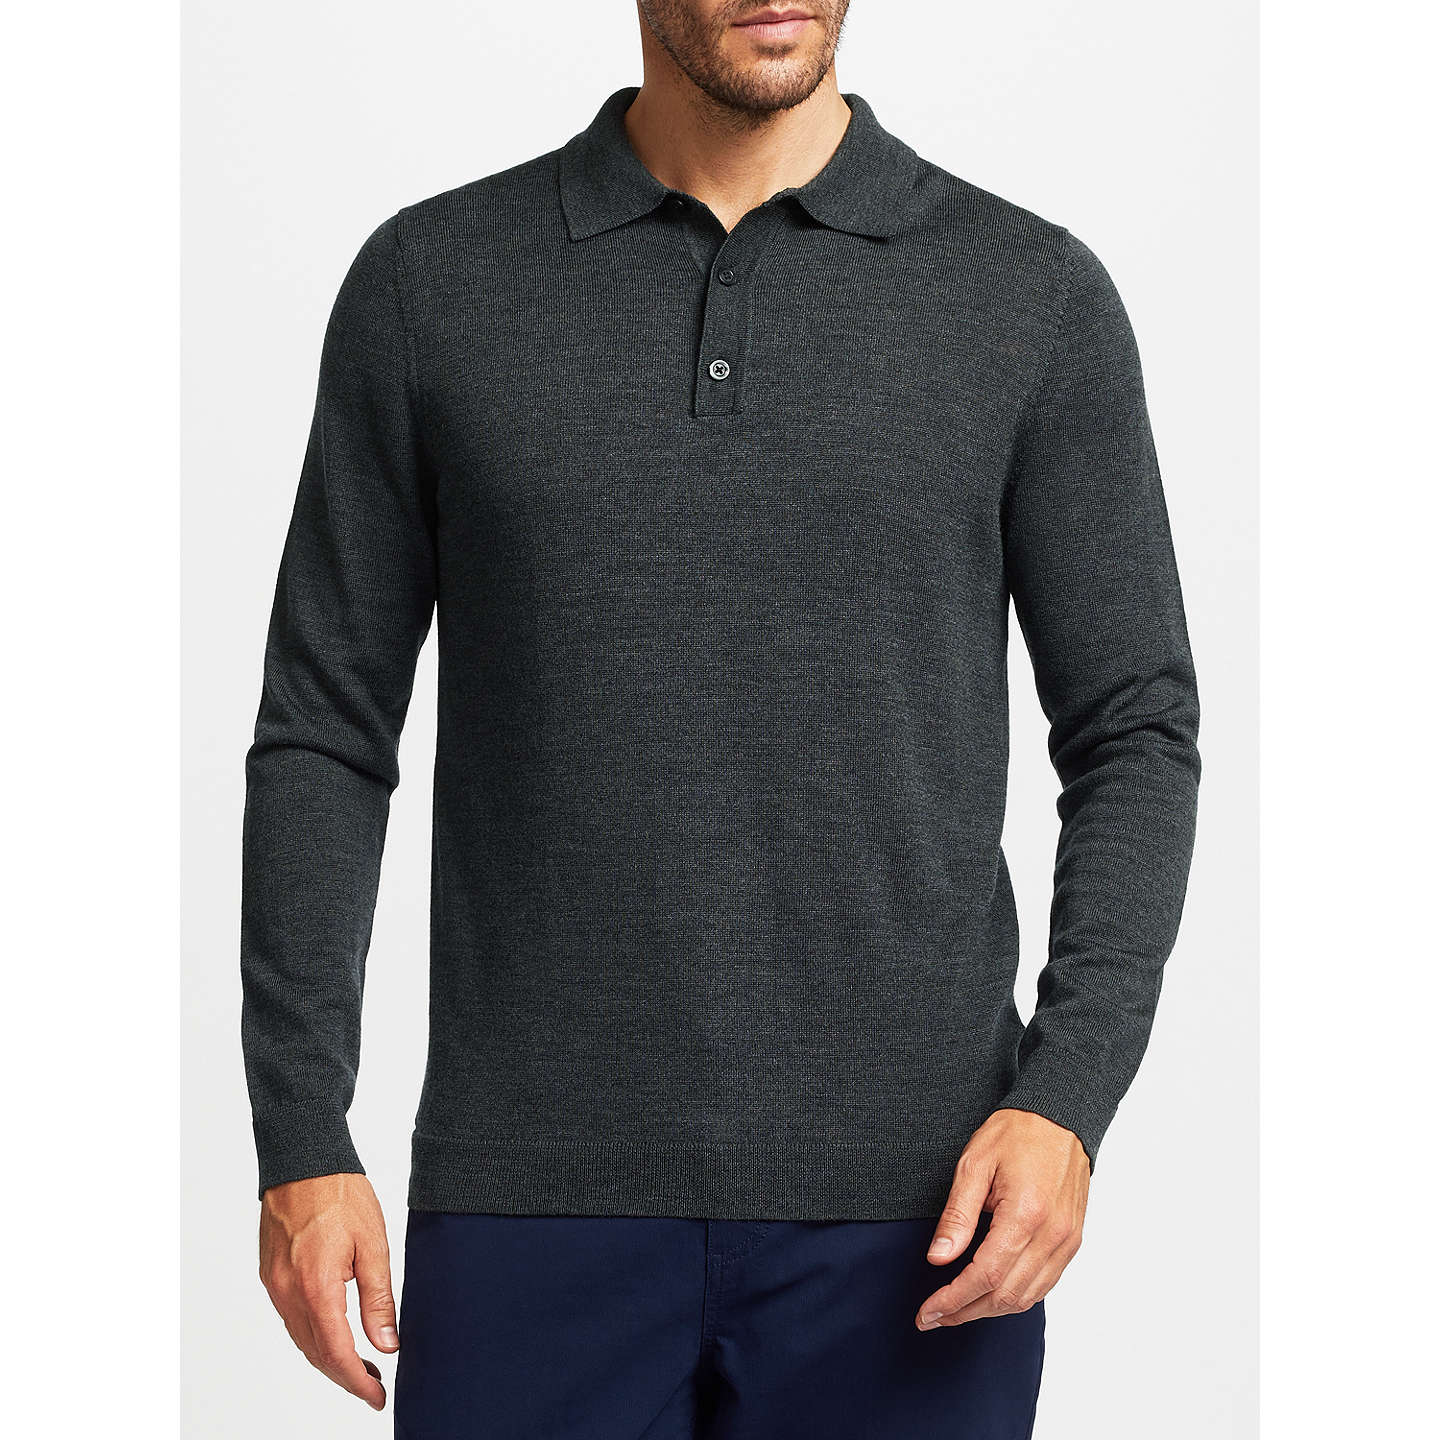 John lewis merino wool long sleeve polo shirt at john lewis for Merino wool shirts for travel